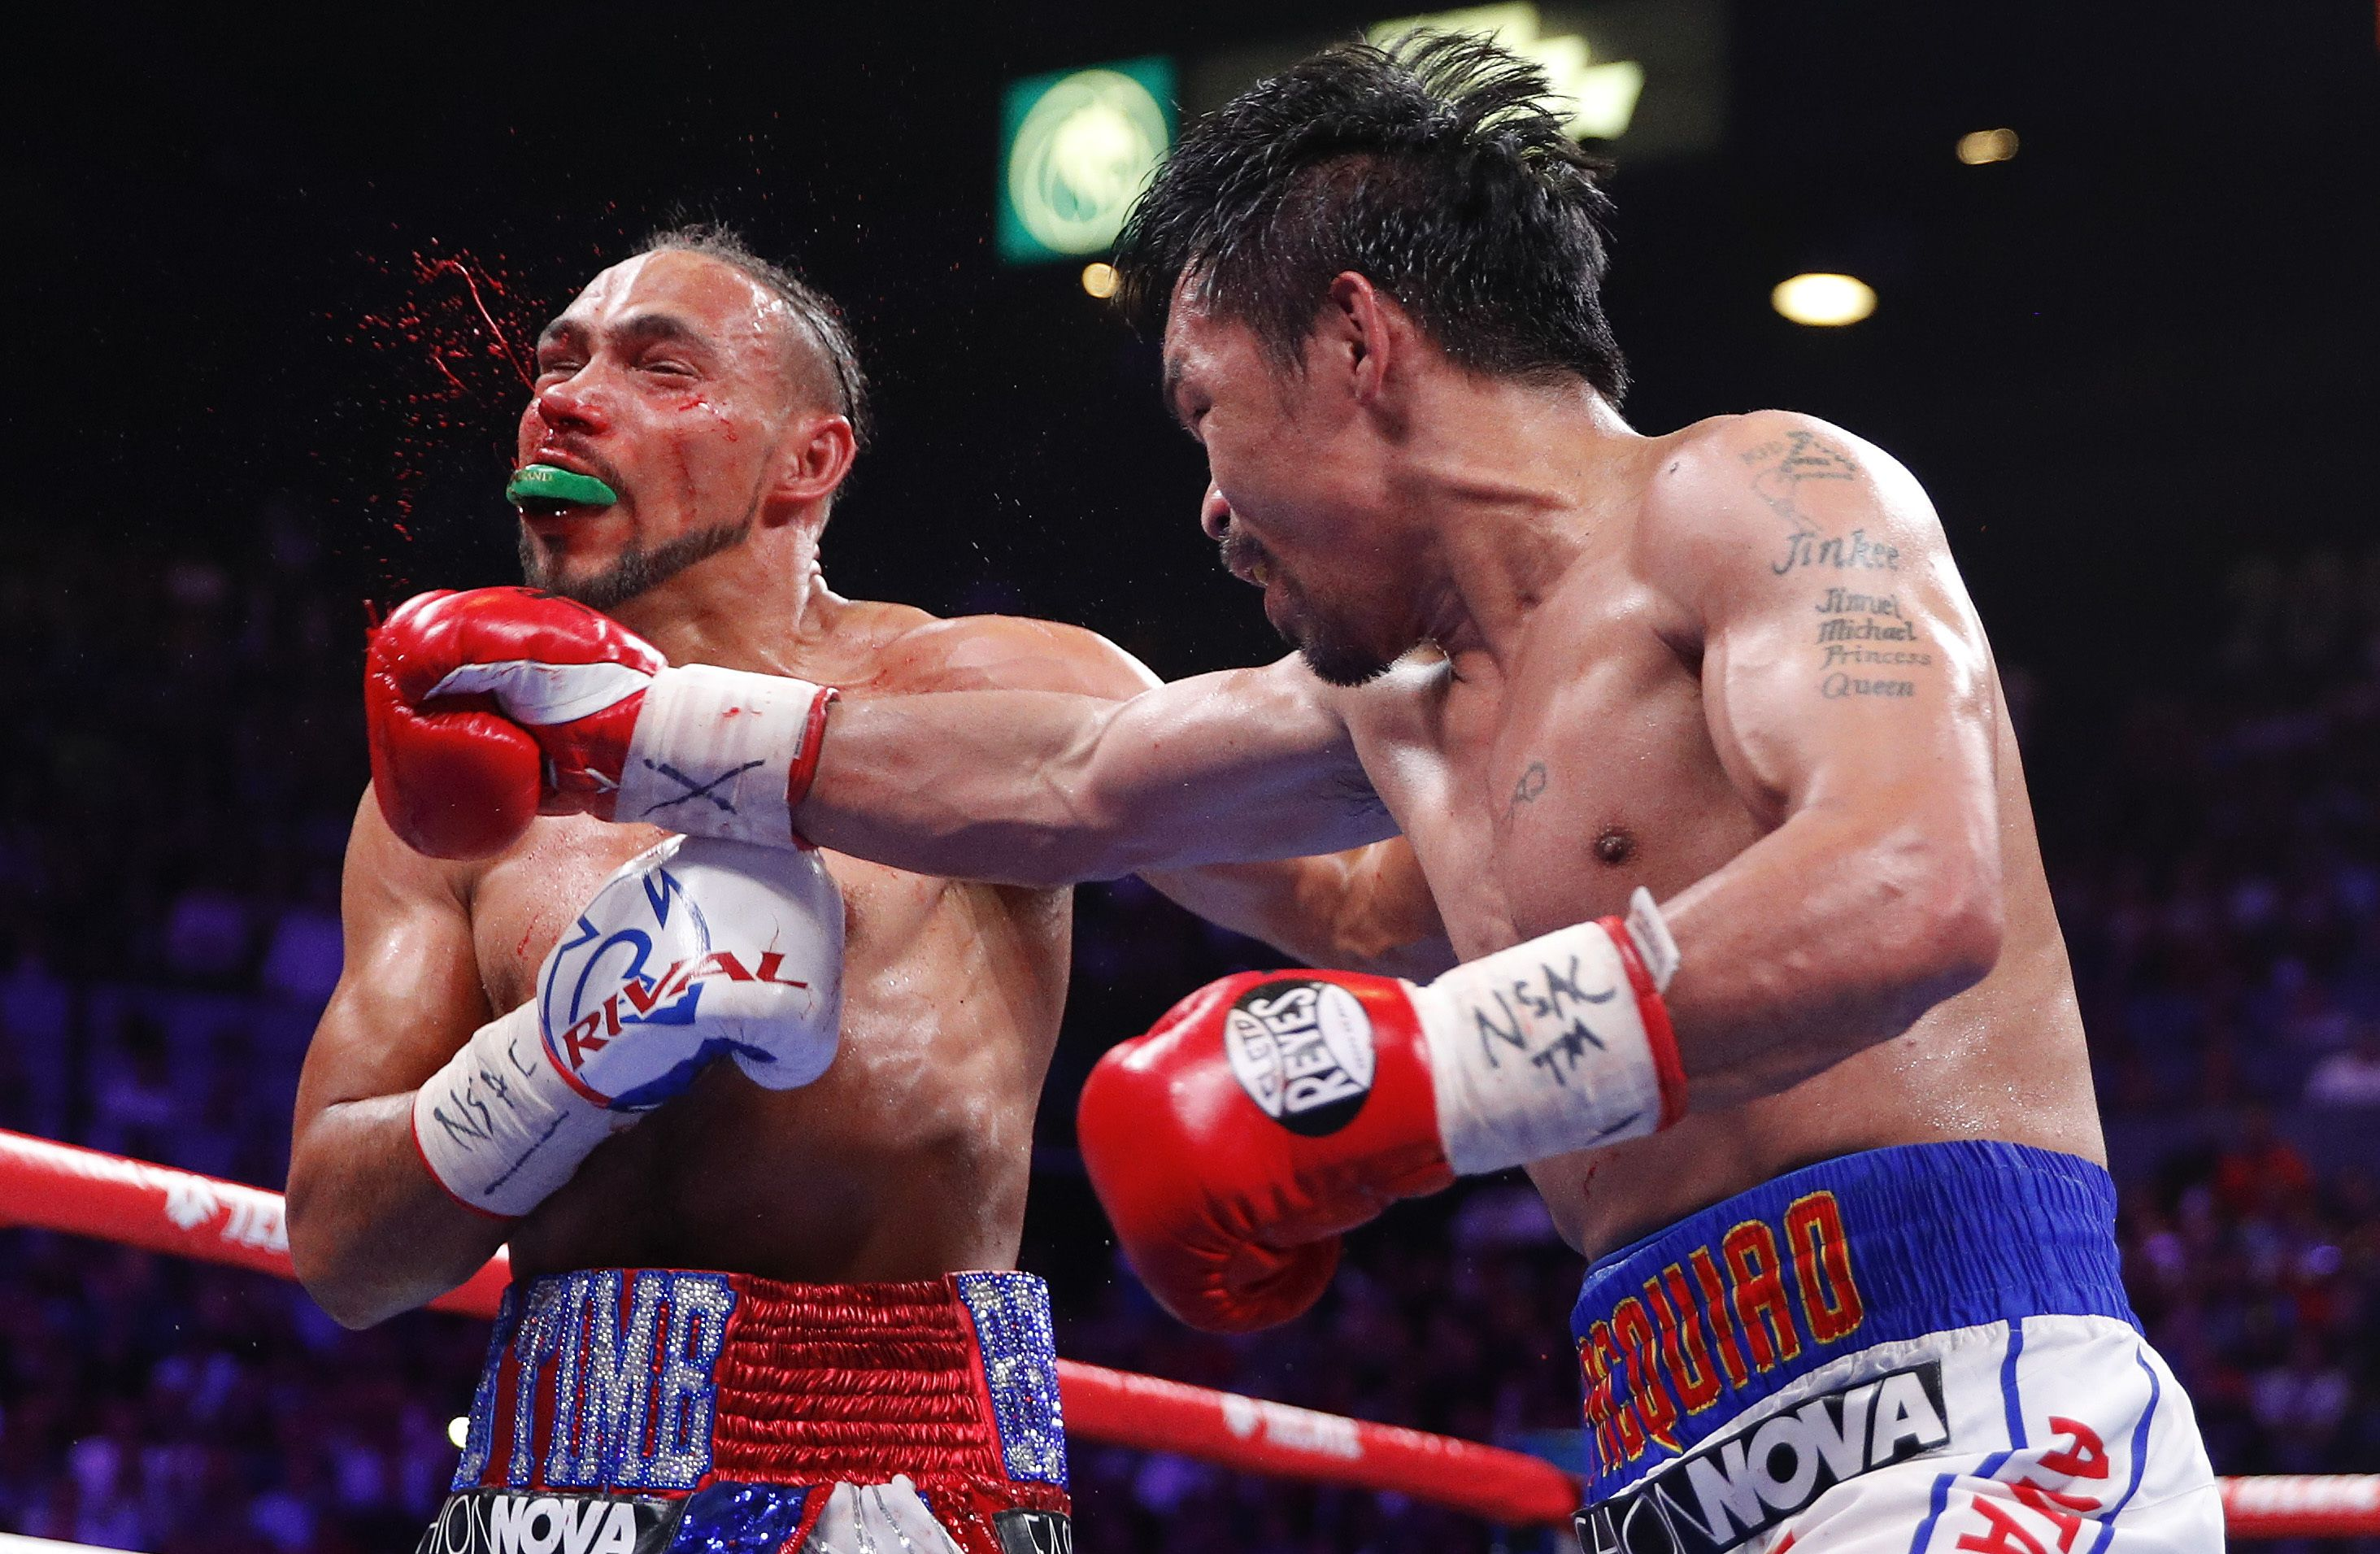 Manny Pacquiao Wins Welterweight Title After Defeating Keith Thurman